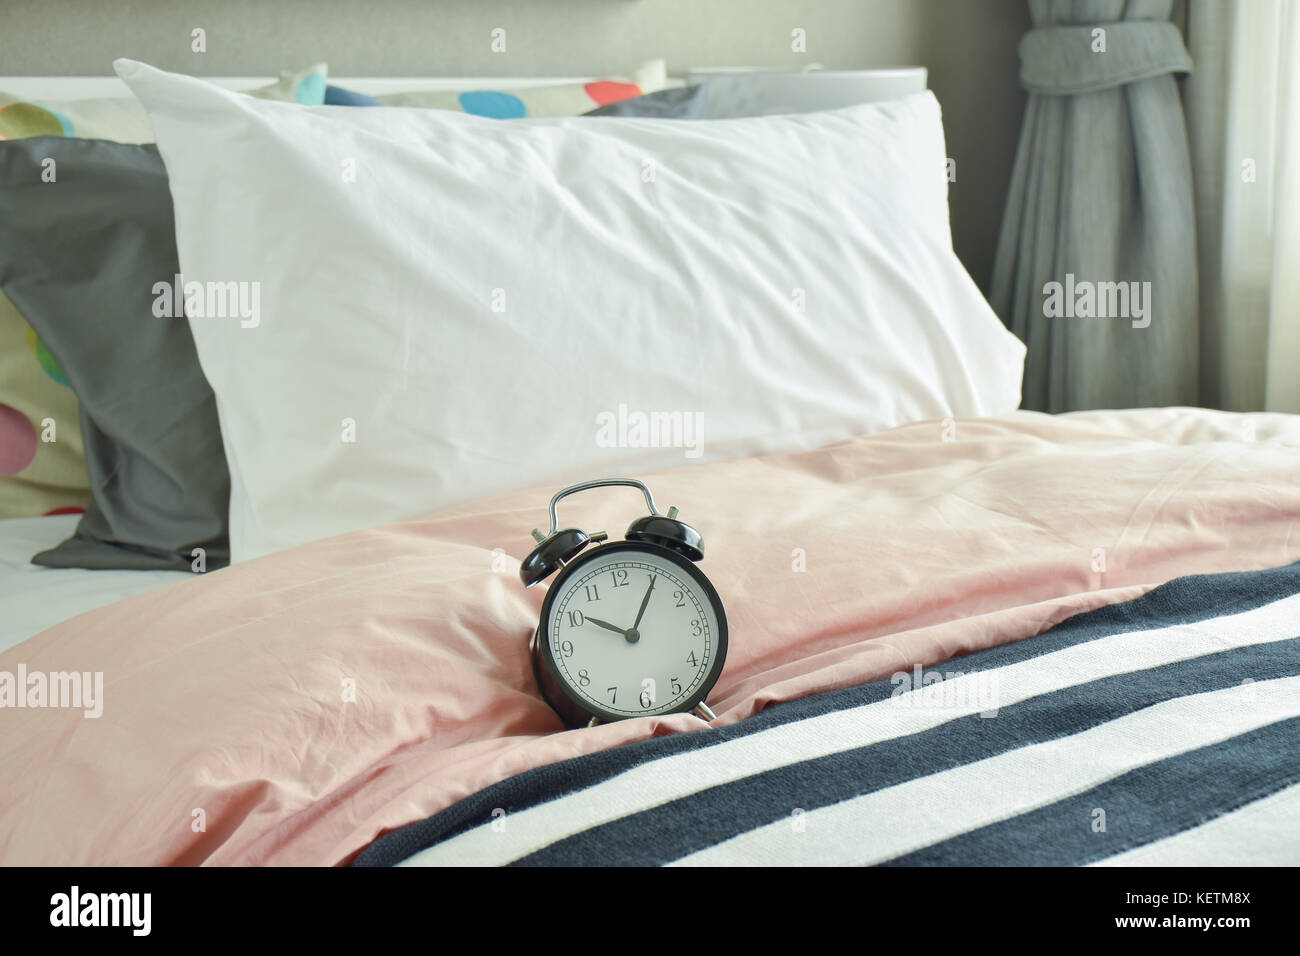 Black Alarm Clock On Bed With Colorful Bedding Stock Photo Alamy